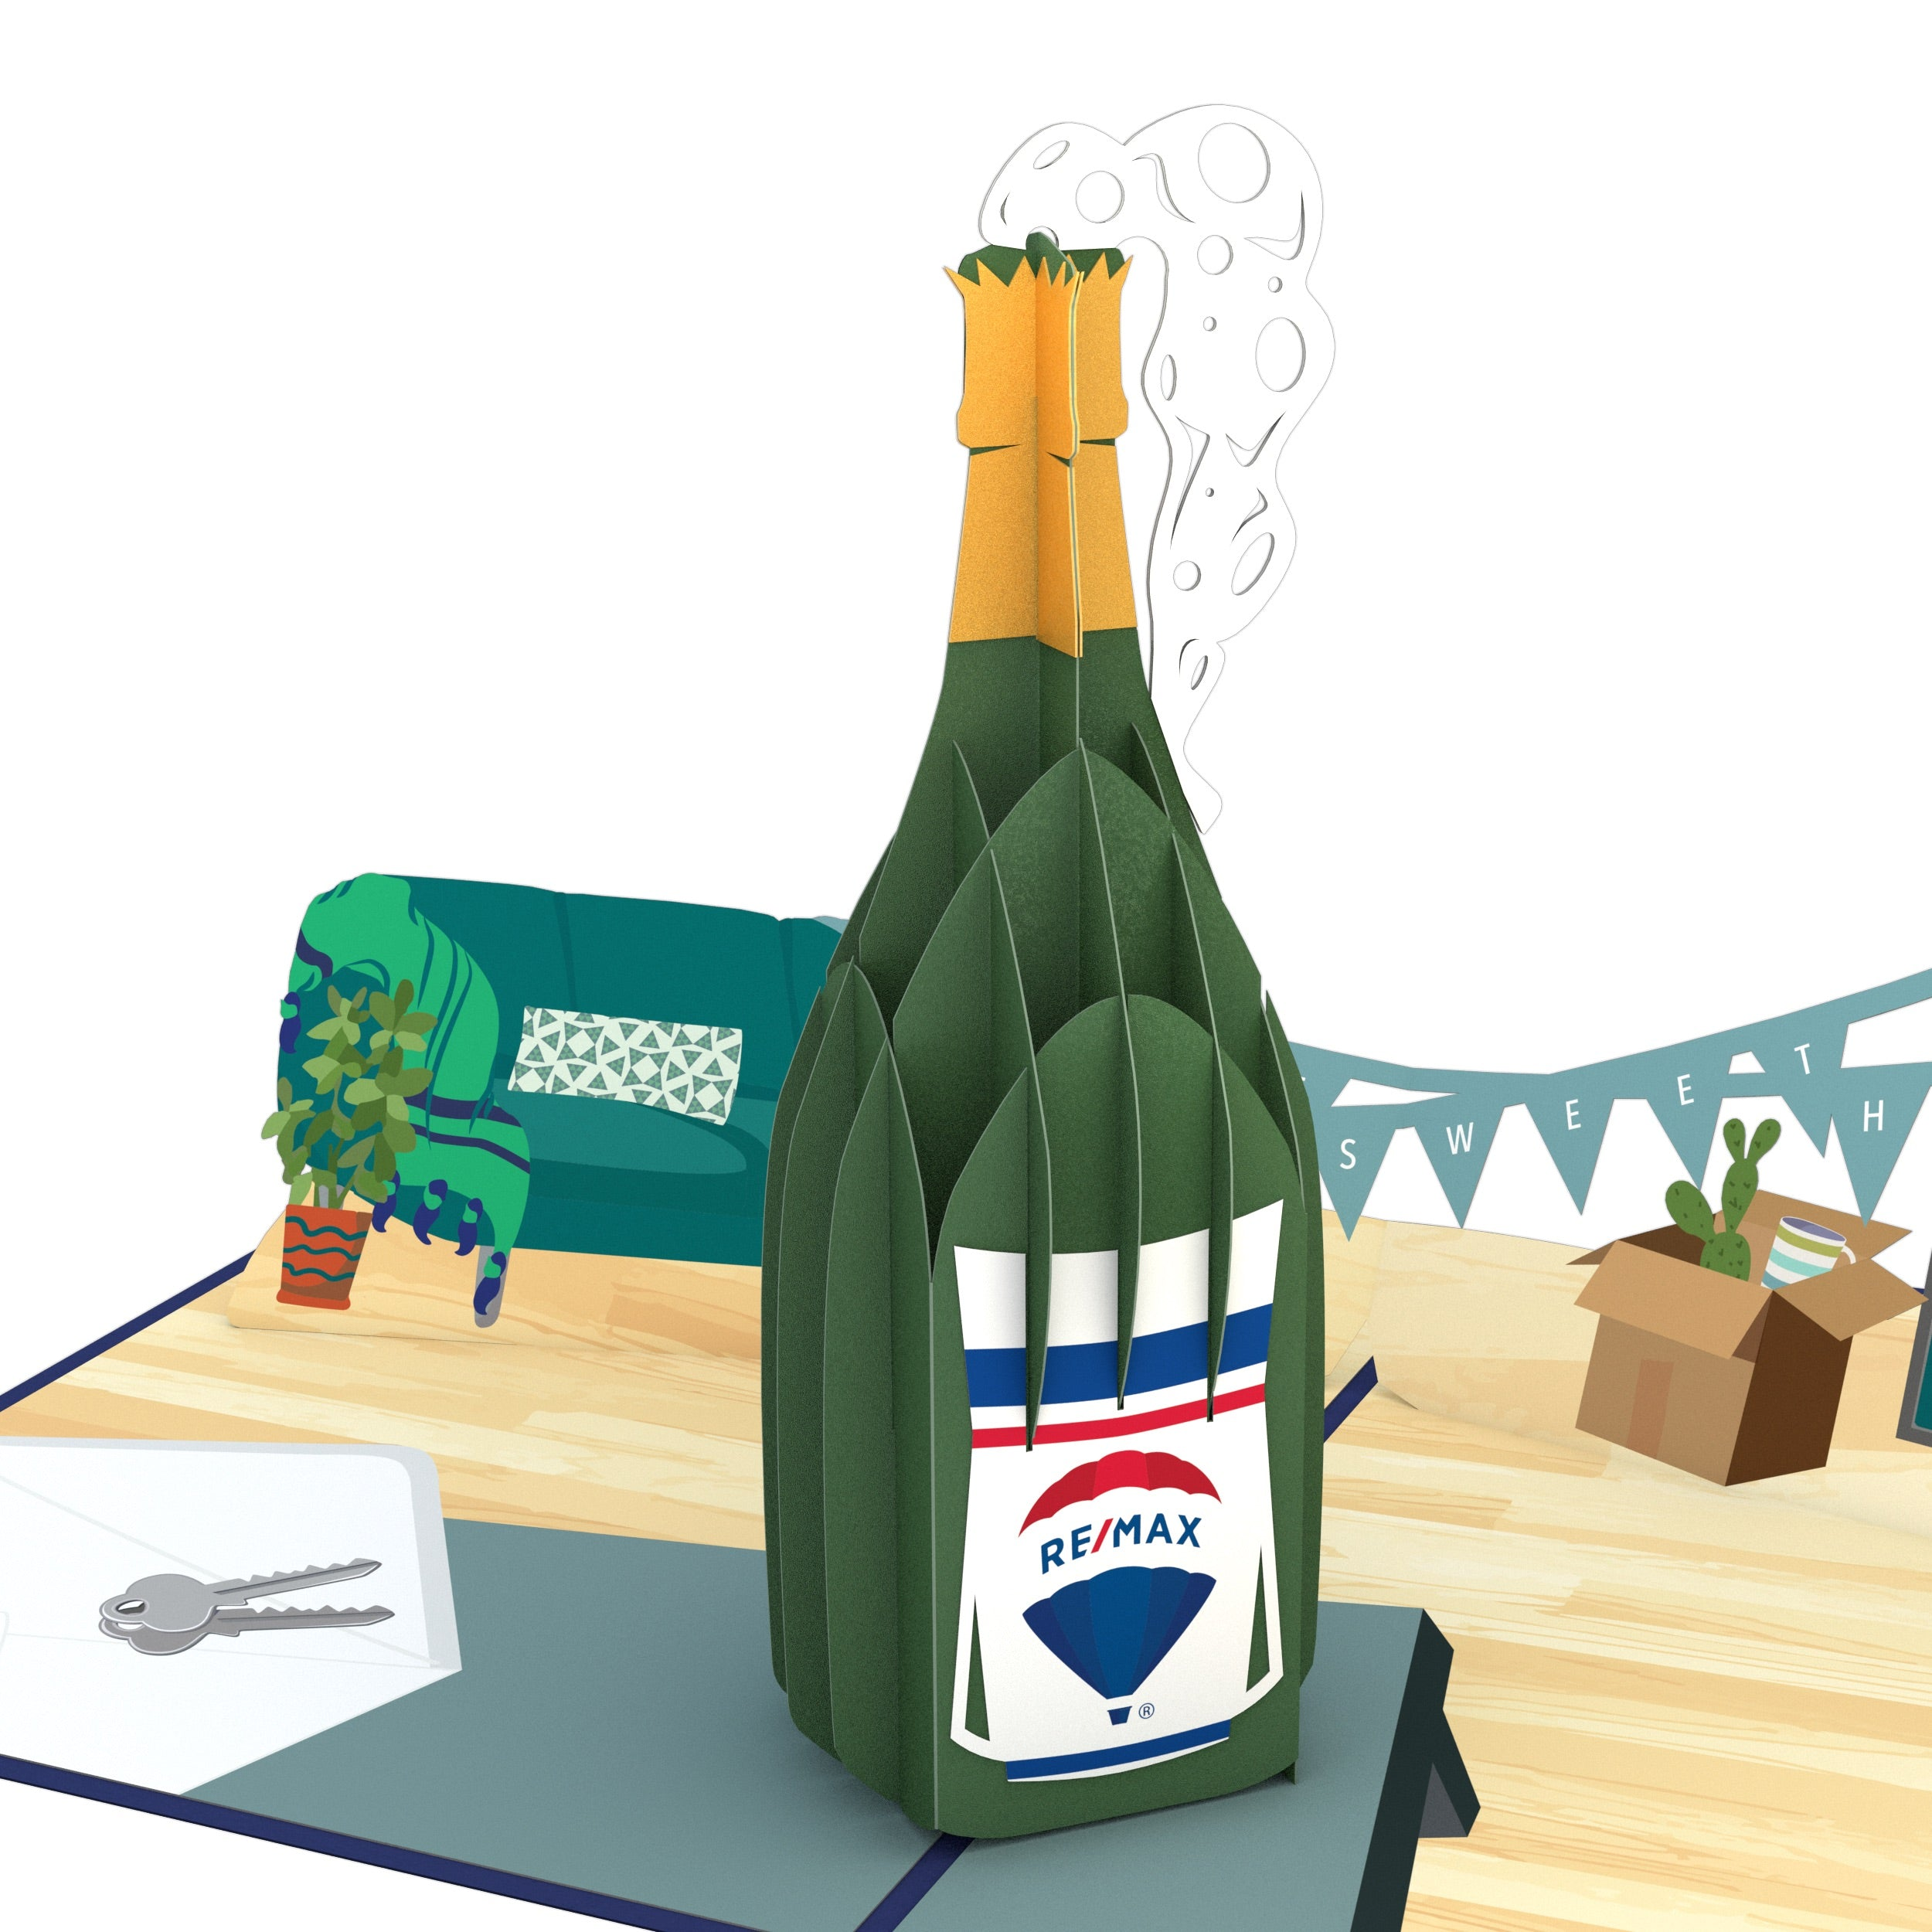 RE/MAX® New Home Champagne